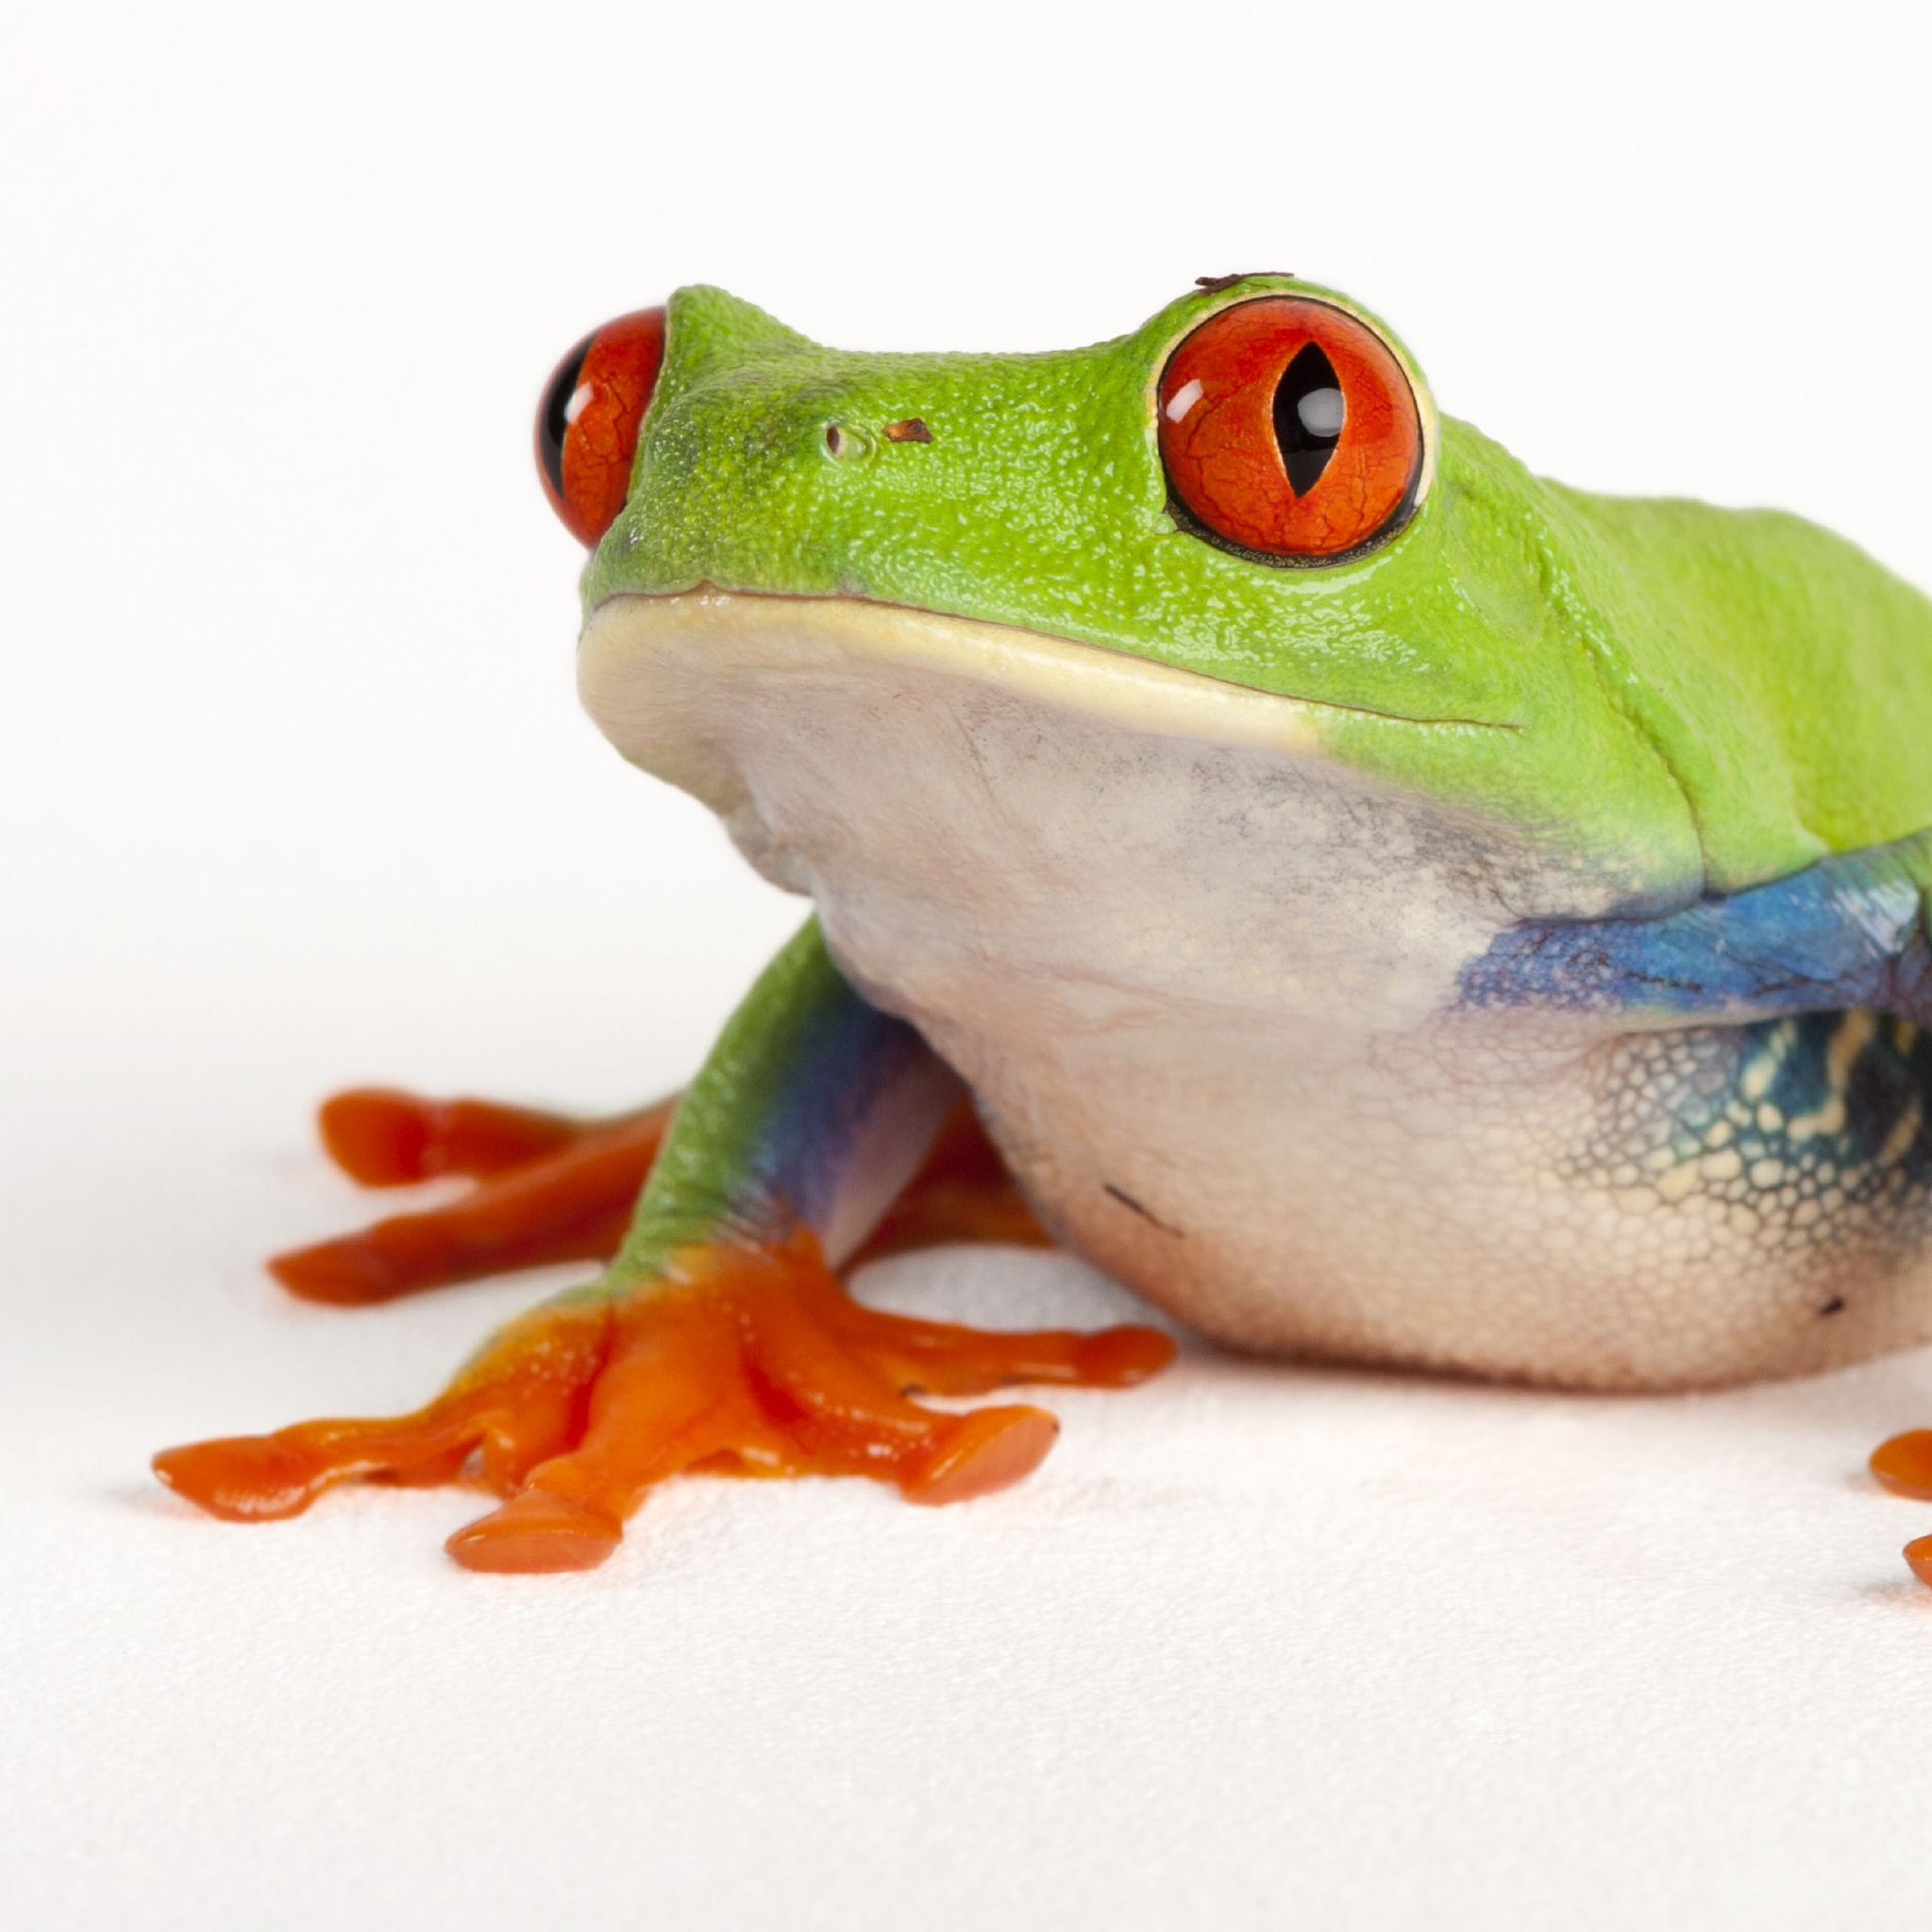 Red-Eyed Tree Frog | National Geographic